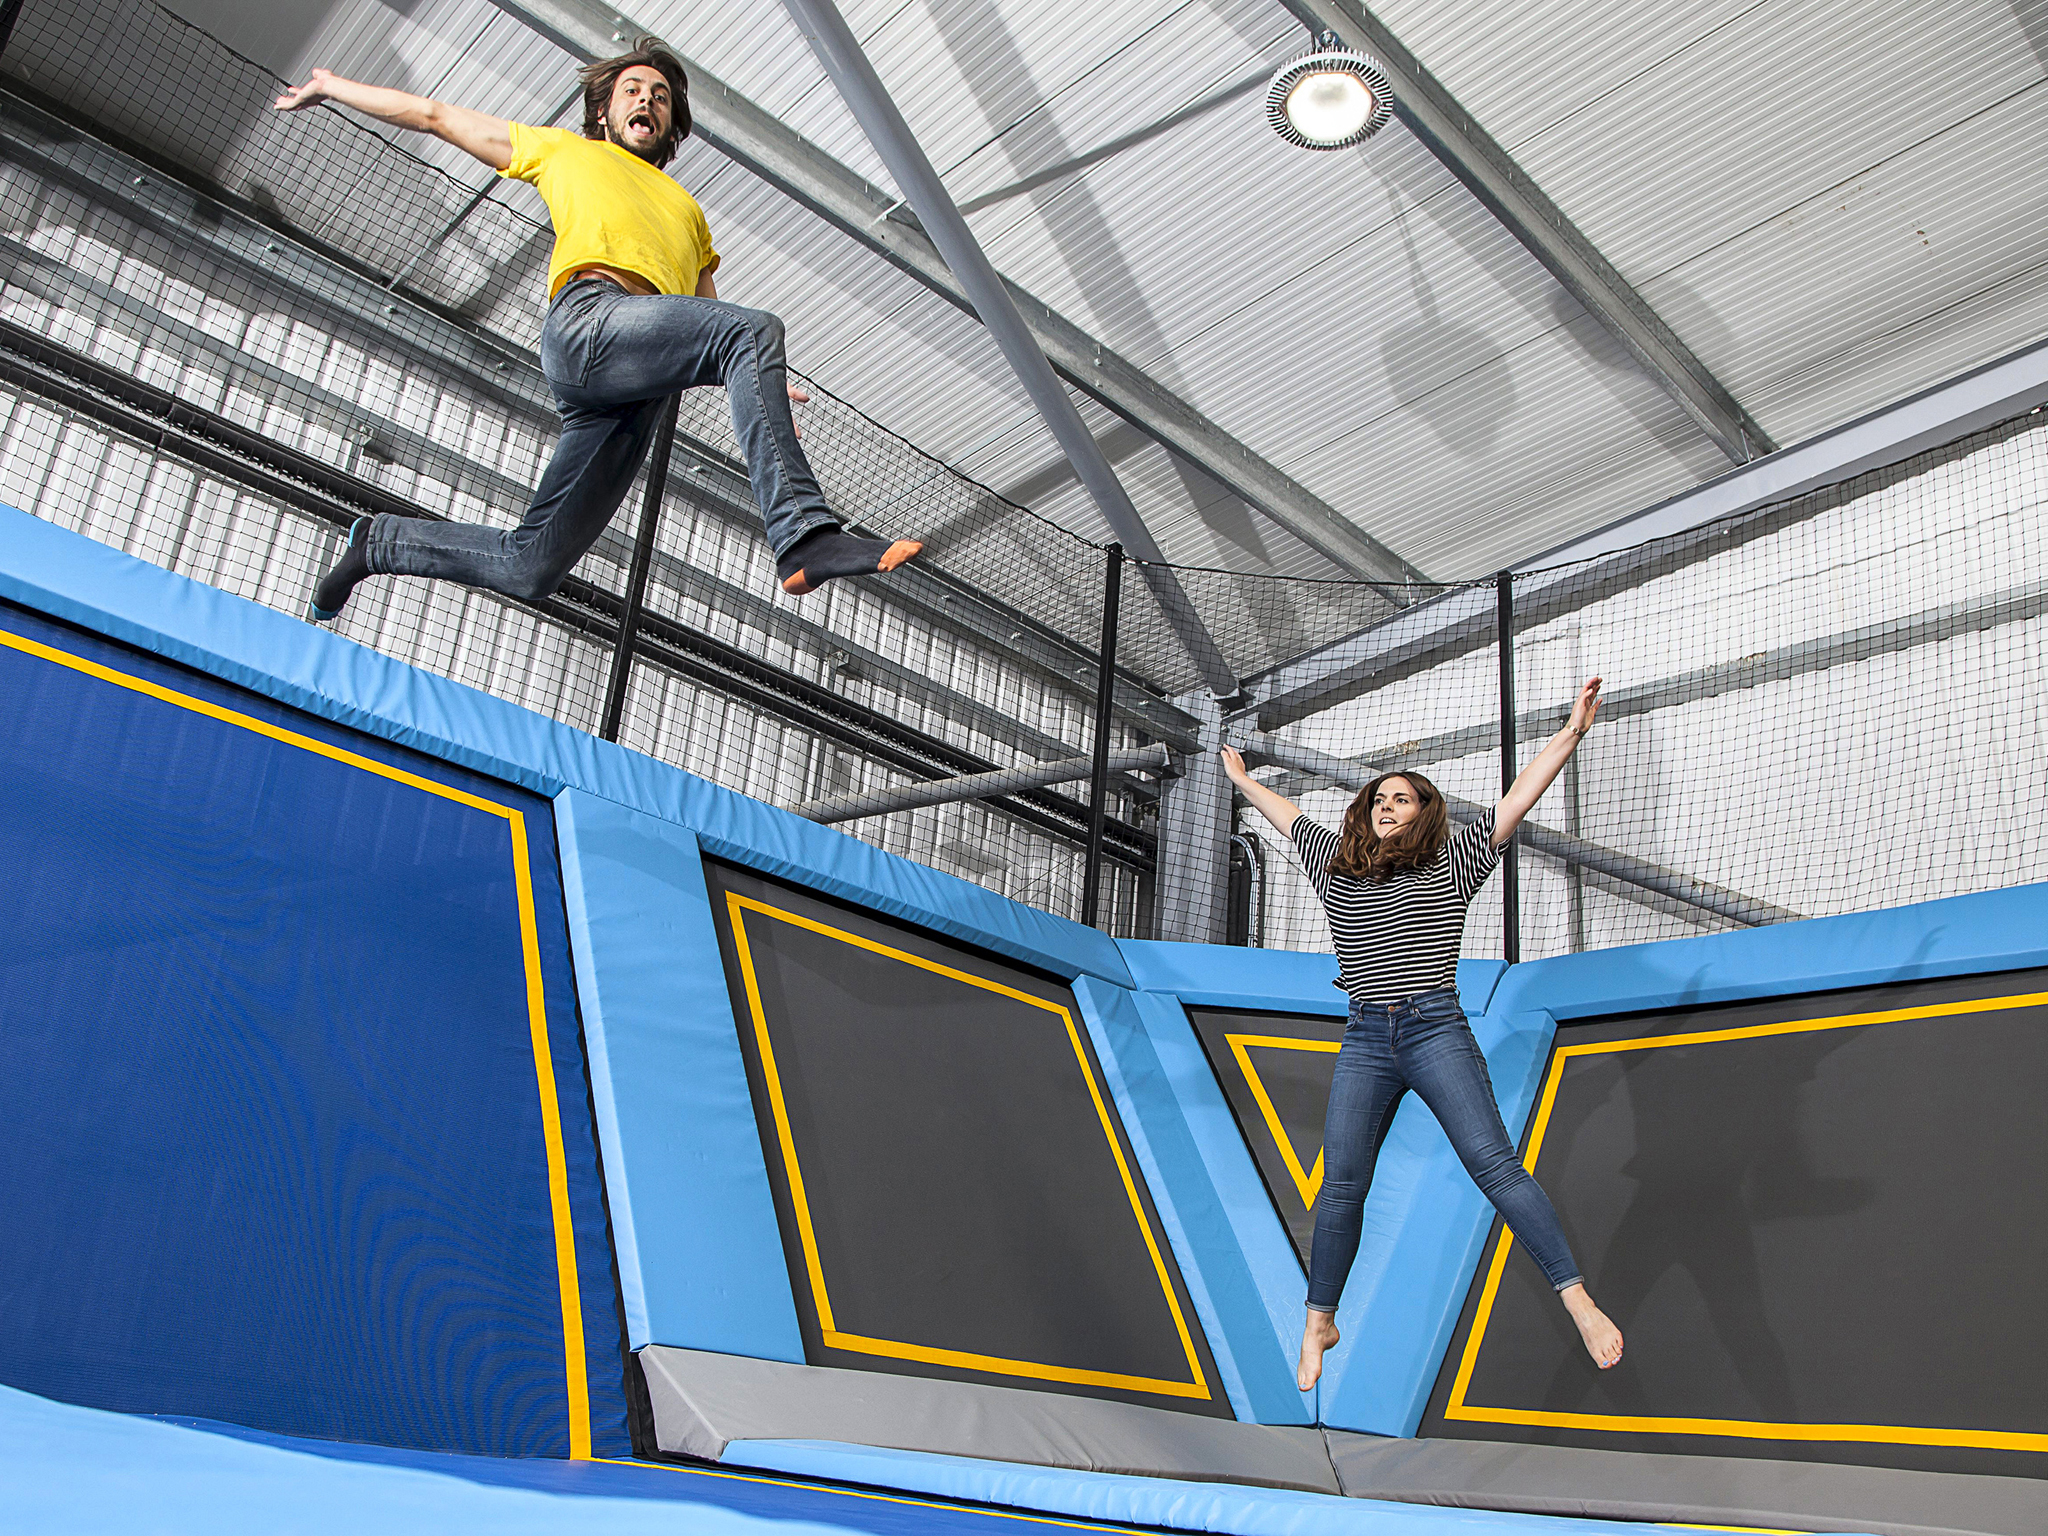 Bounce off the walls at Oxygen Freejumping